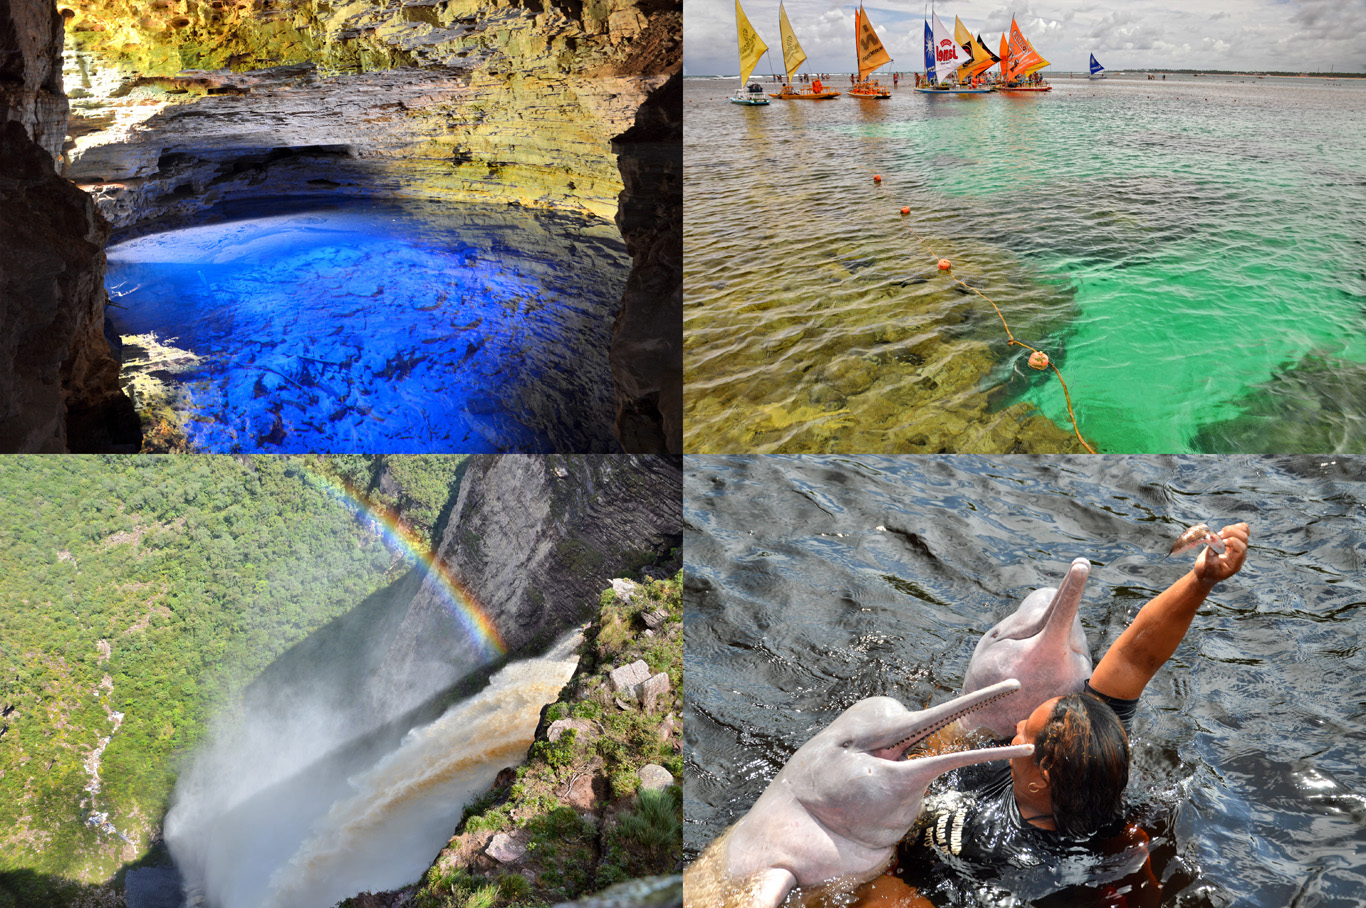 From top left: Poco Azul (Blue Cave) in Chapada Diamantina, Coral Reef Pools in Porto de Galinhsa, Fumaca (smoke) Waterfall and Pink Dolphins in The Amazon